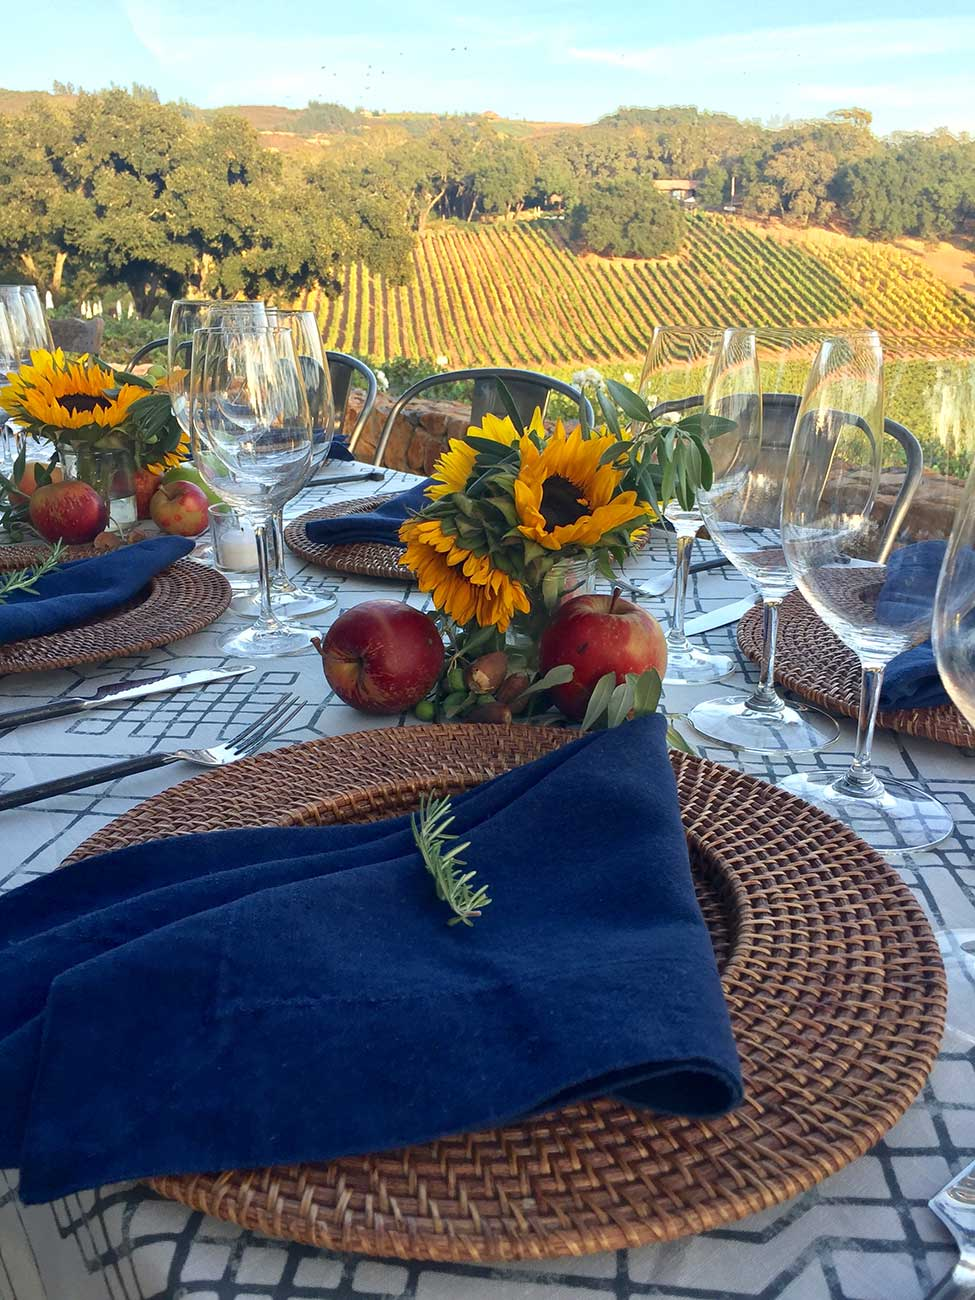 Tabletop design with crystal, dinnerware and sunflowers and apples overlooking a vineyard